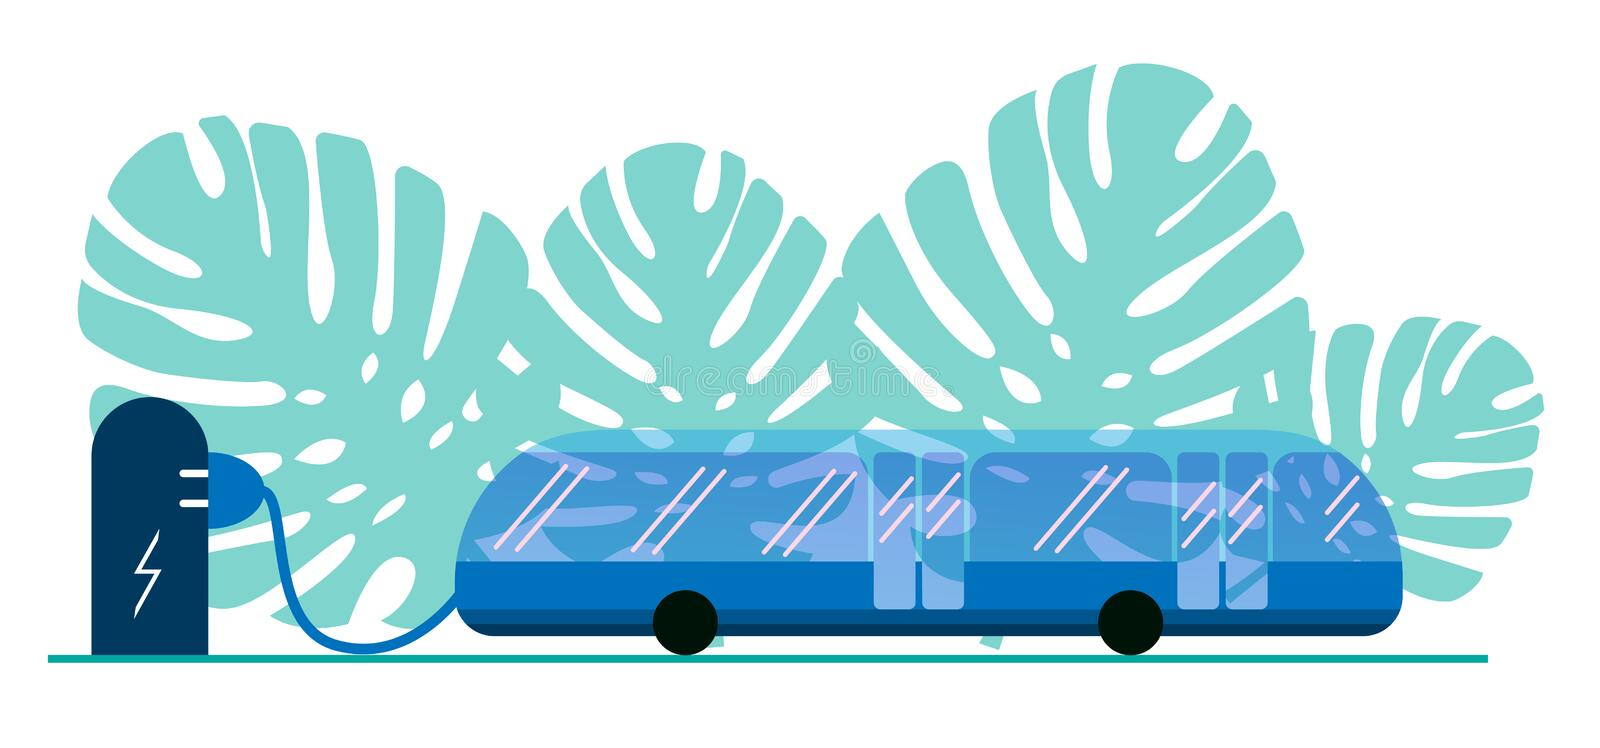 Electric bus in the city on recharging the battery at the bus stop. Eco-friendly bus powered by electricity. Public transport is vector illustration